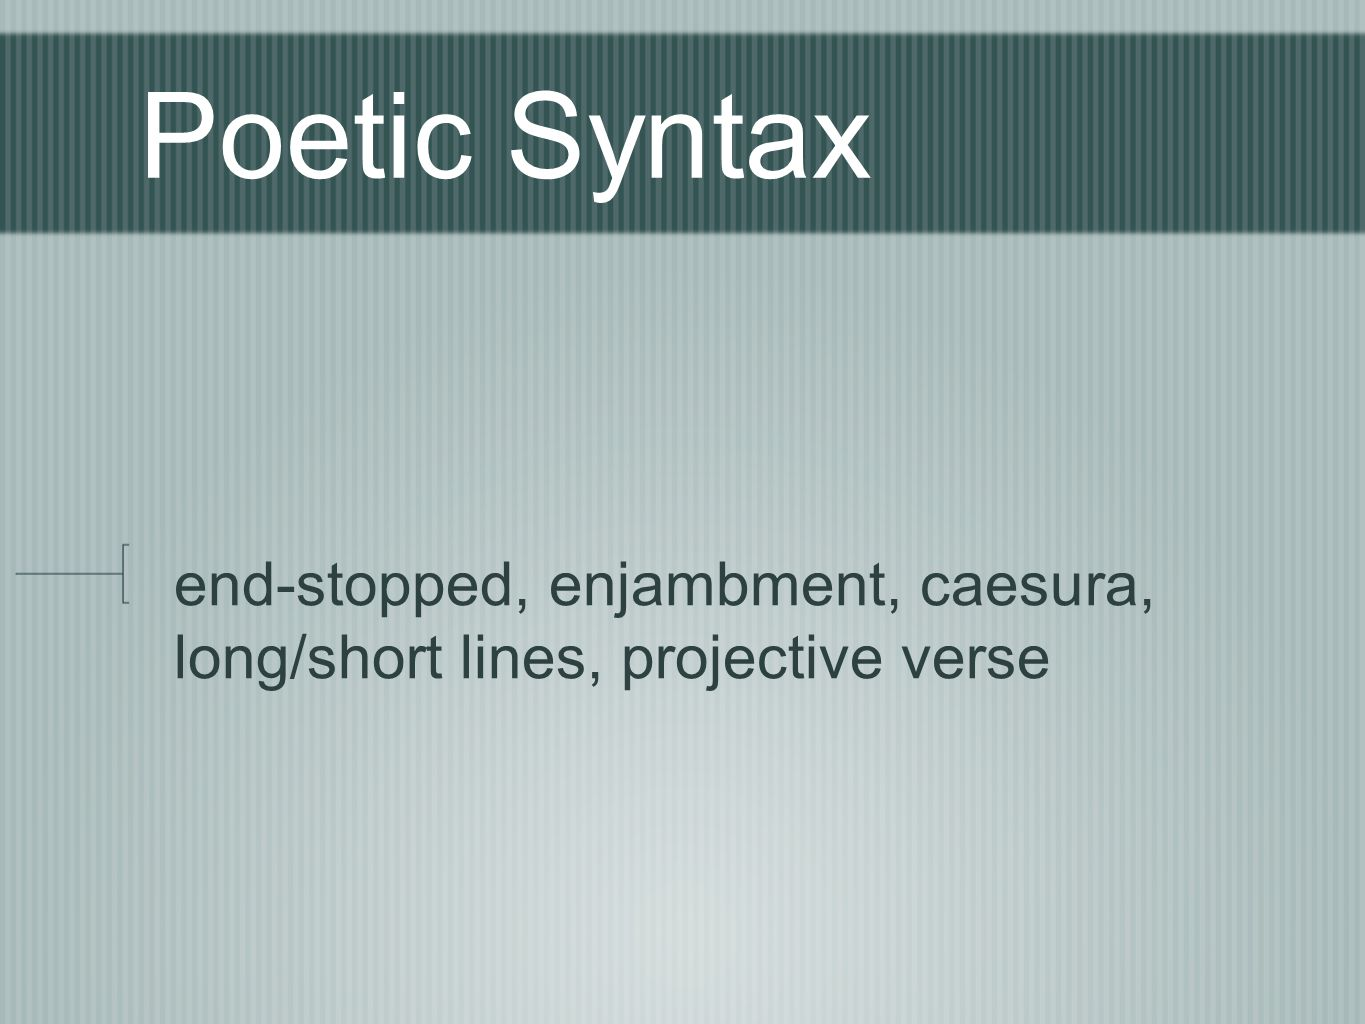 Poetic Syntax end-stopped, enjambment, caesura, long/short lines, projective verse